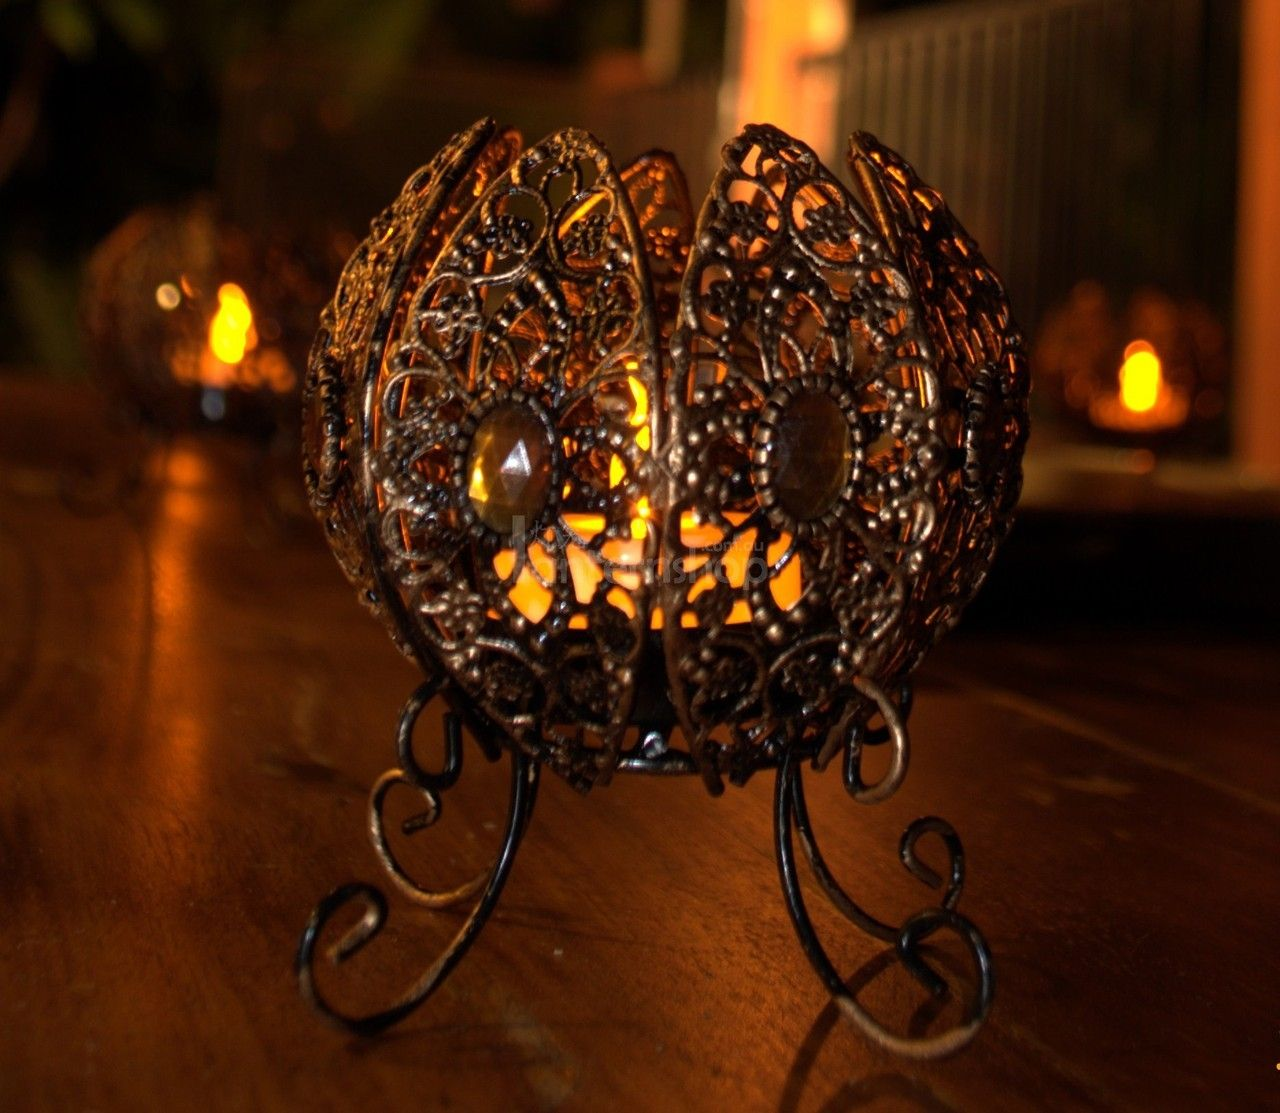 Moroccan table lantern would look amazing for a classy halloween decoration even